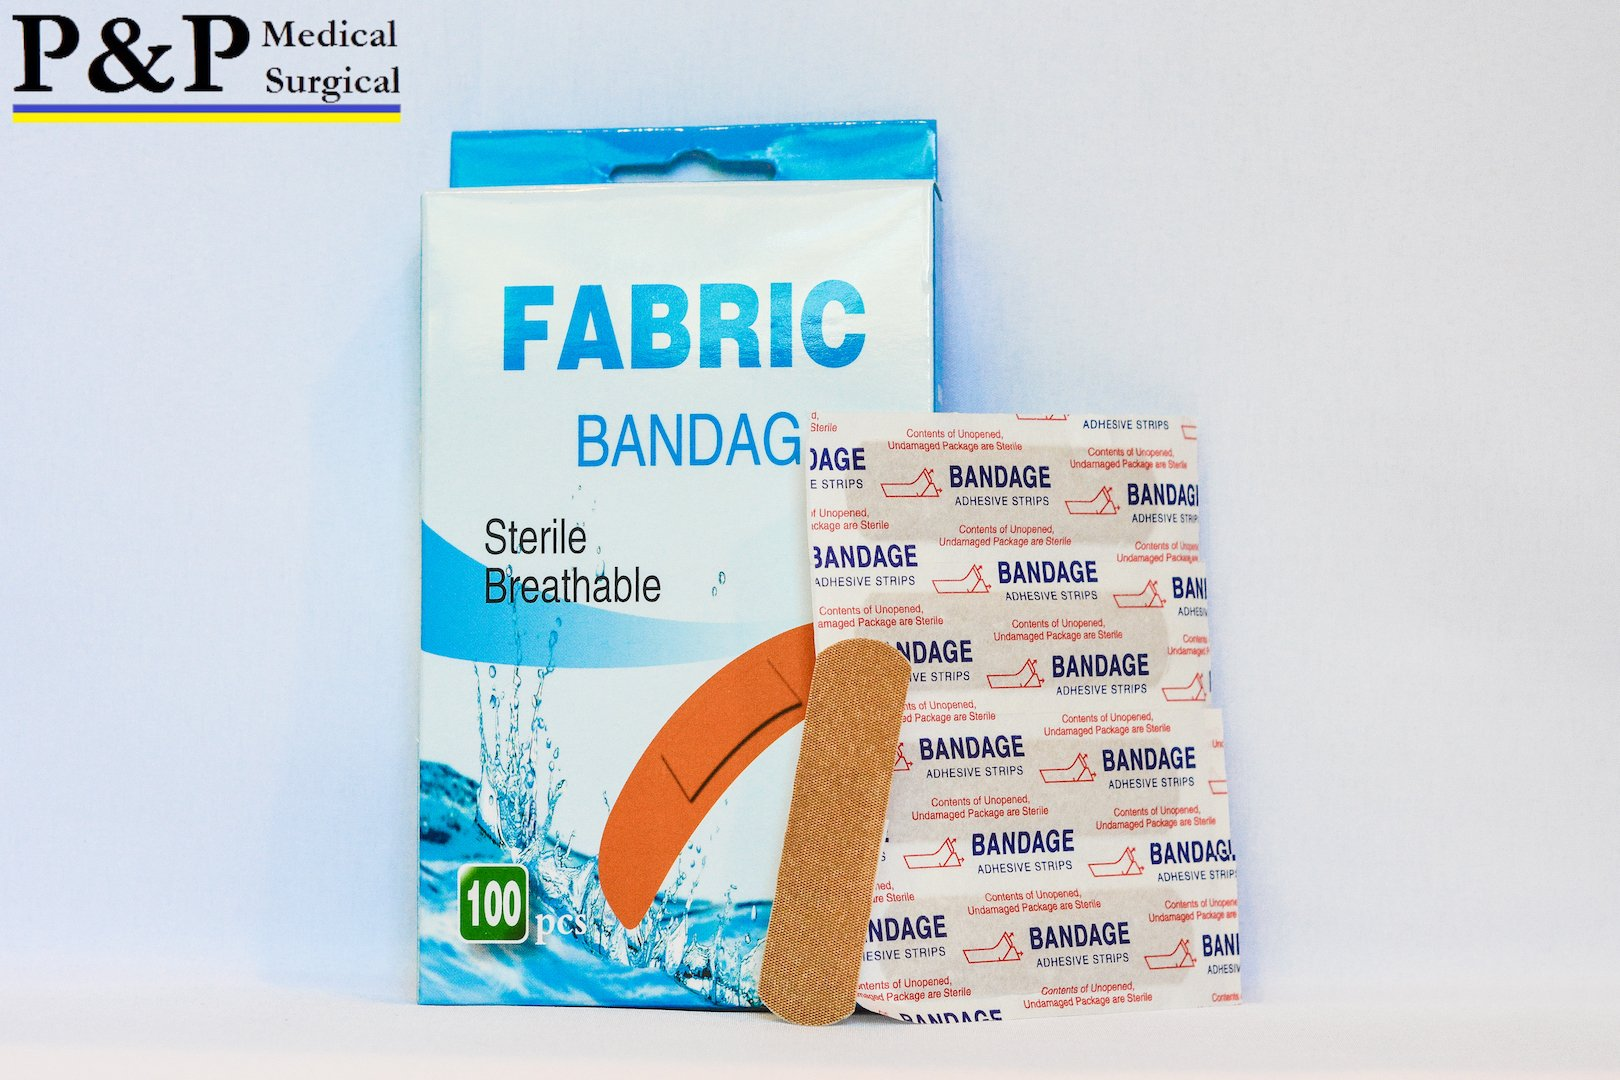 BAND AID STERILE FLEXIBLE SELF ADHESIVE BANDAGES (Class AAB Fabric used for production)_Skin color_Box OF 5000 Pieces_size 3/4x3 inches_Designed in USA by P&P Medical Surgical